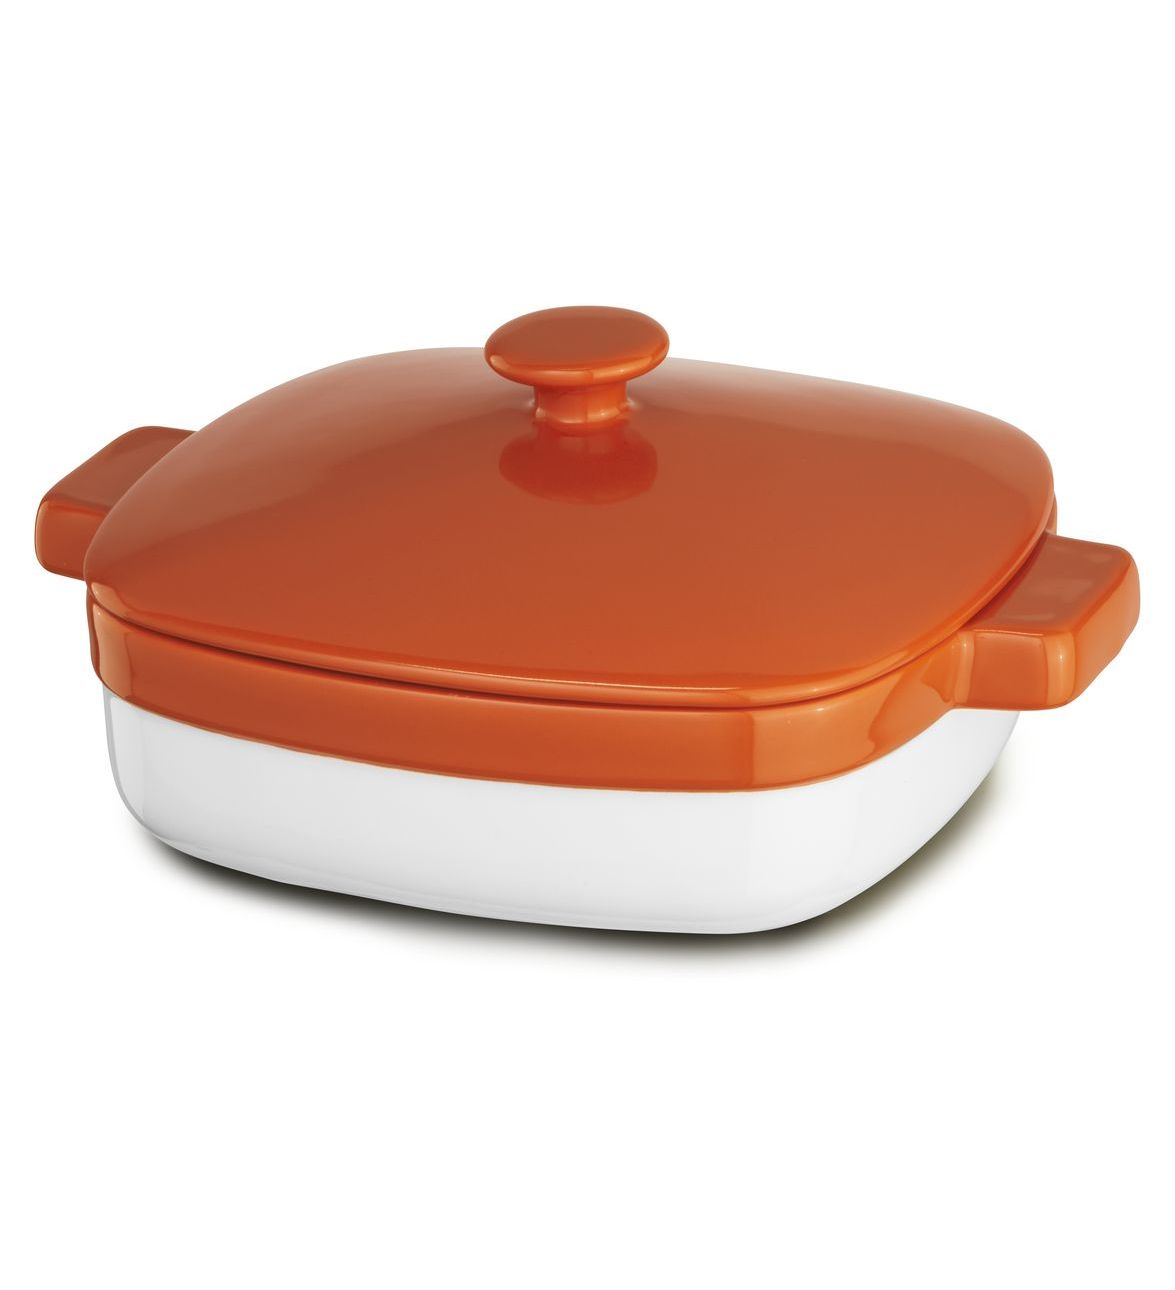 KitchenAid® Streamline Ceramic 2.8-Quart Casserole